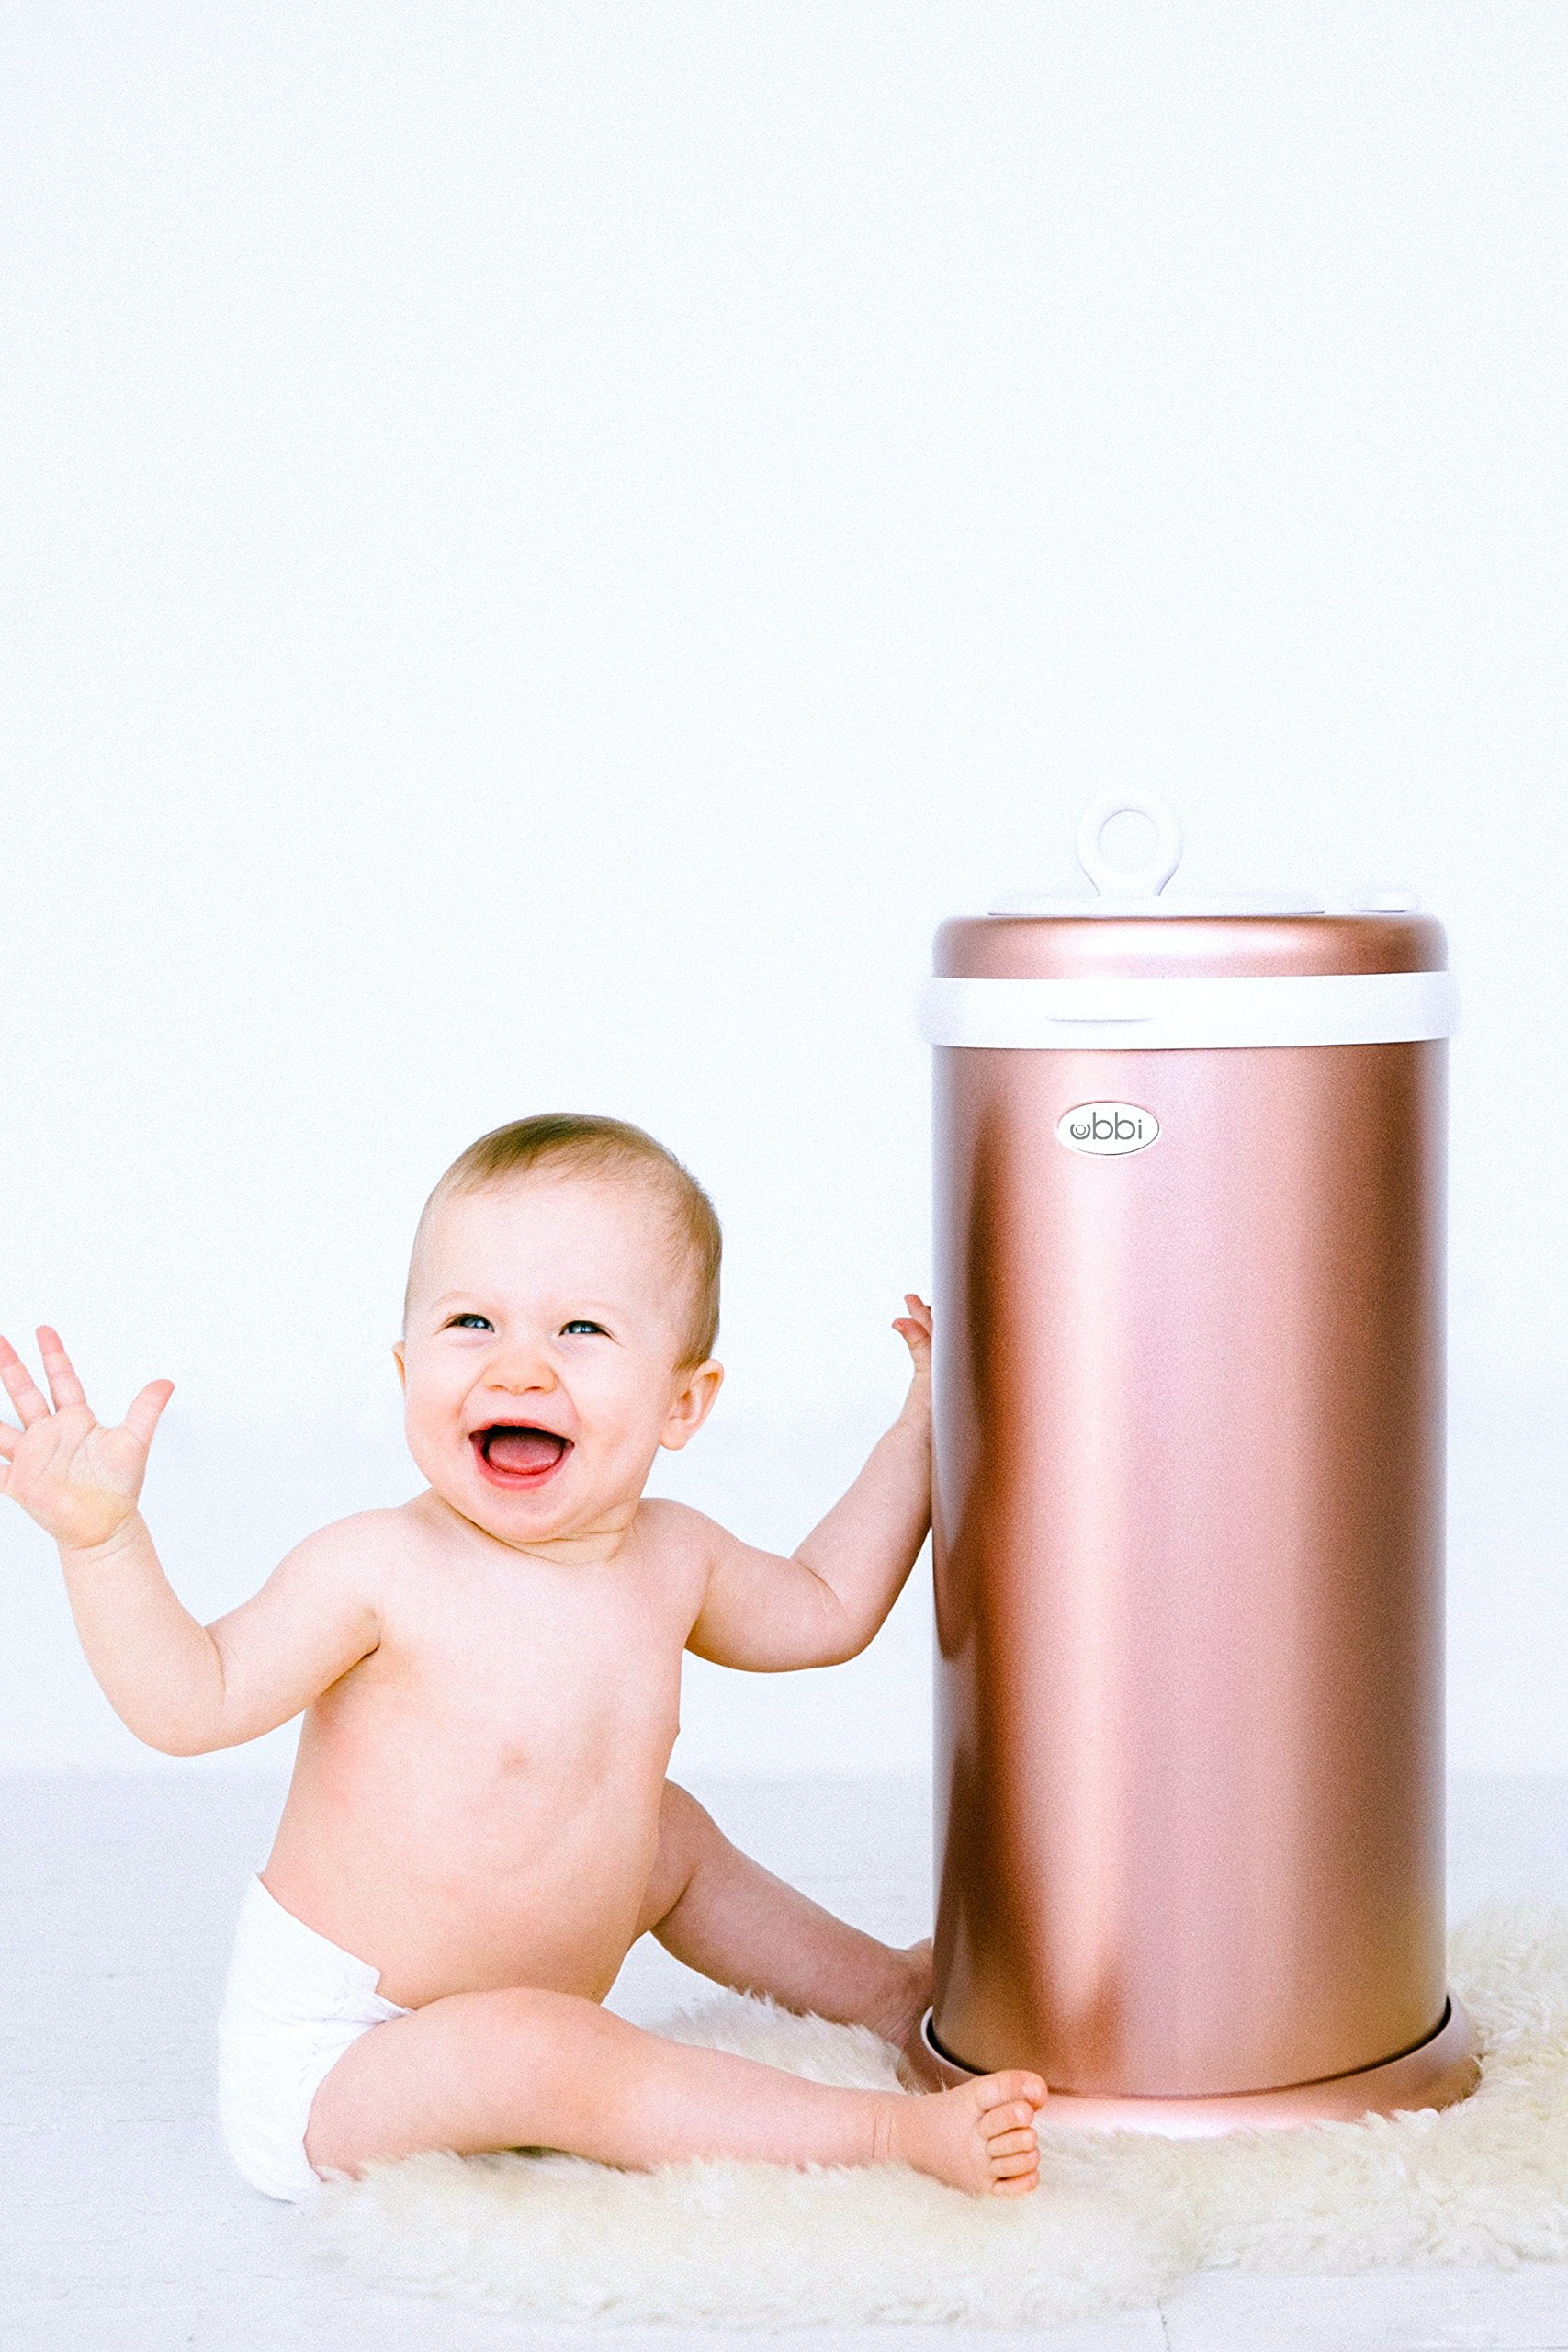 Ubbi Limited Edition, Money Saving, No Special Bag Required, Steel Odor Locking Diaper Pail, Rose Gold by Ubbi (Image #4)